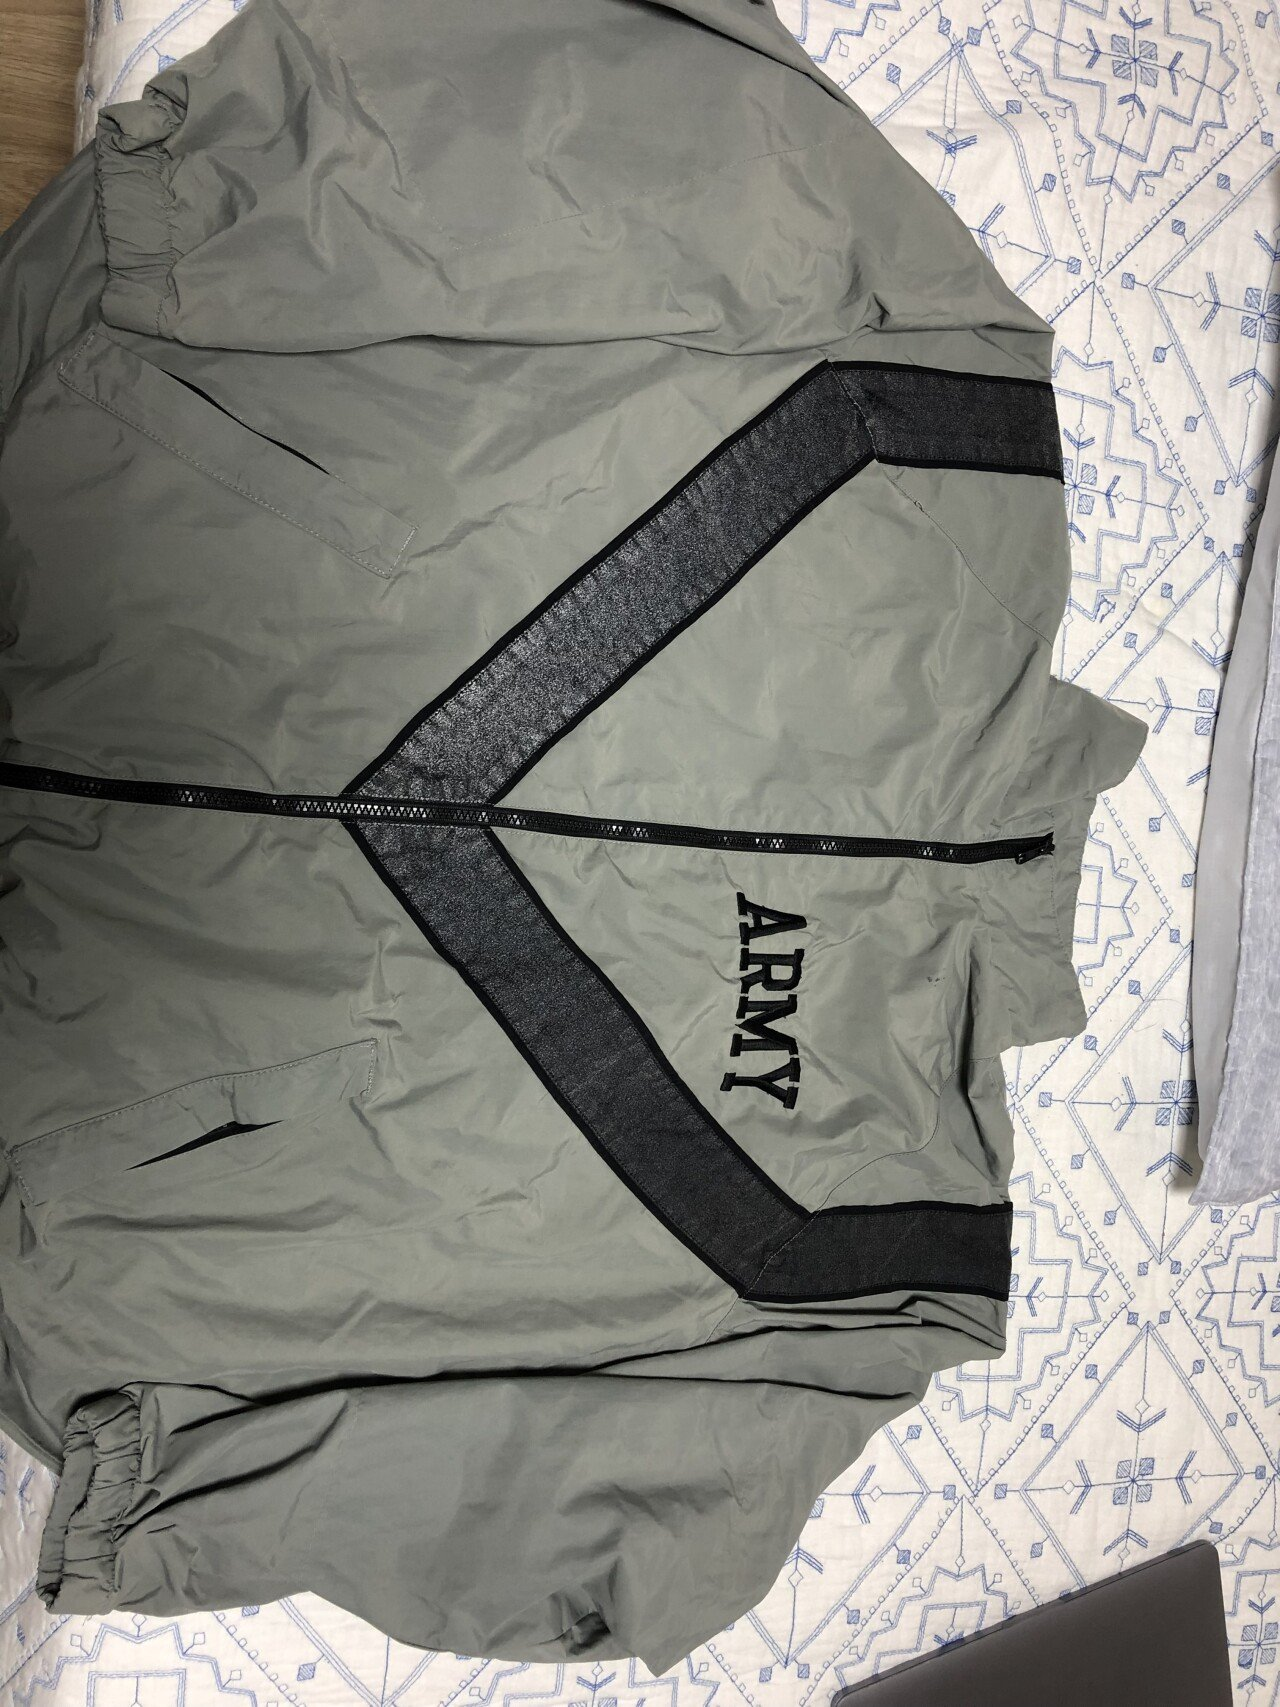 U.S army original ipfu jacket 1세대